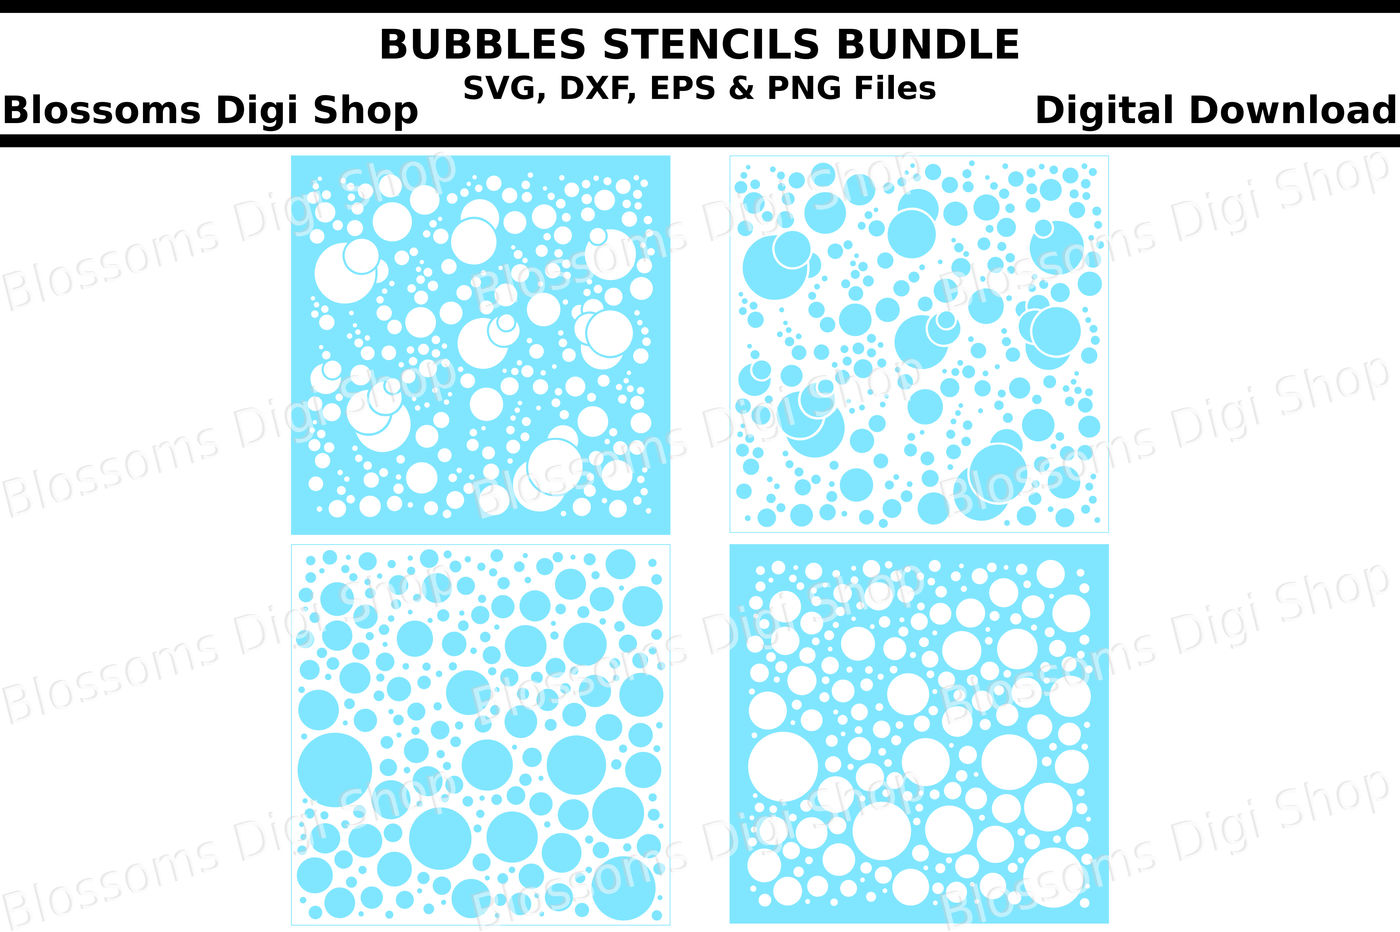 Bubbles Stencils Bundle Svg Dxf Eps And Png Files By Blossoms